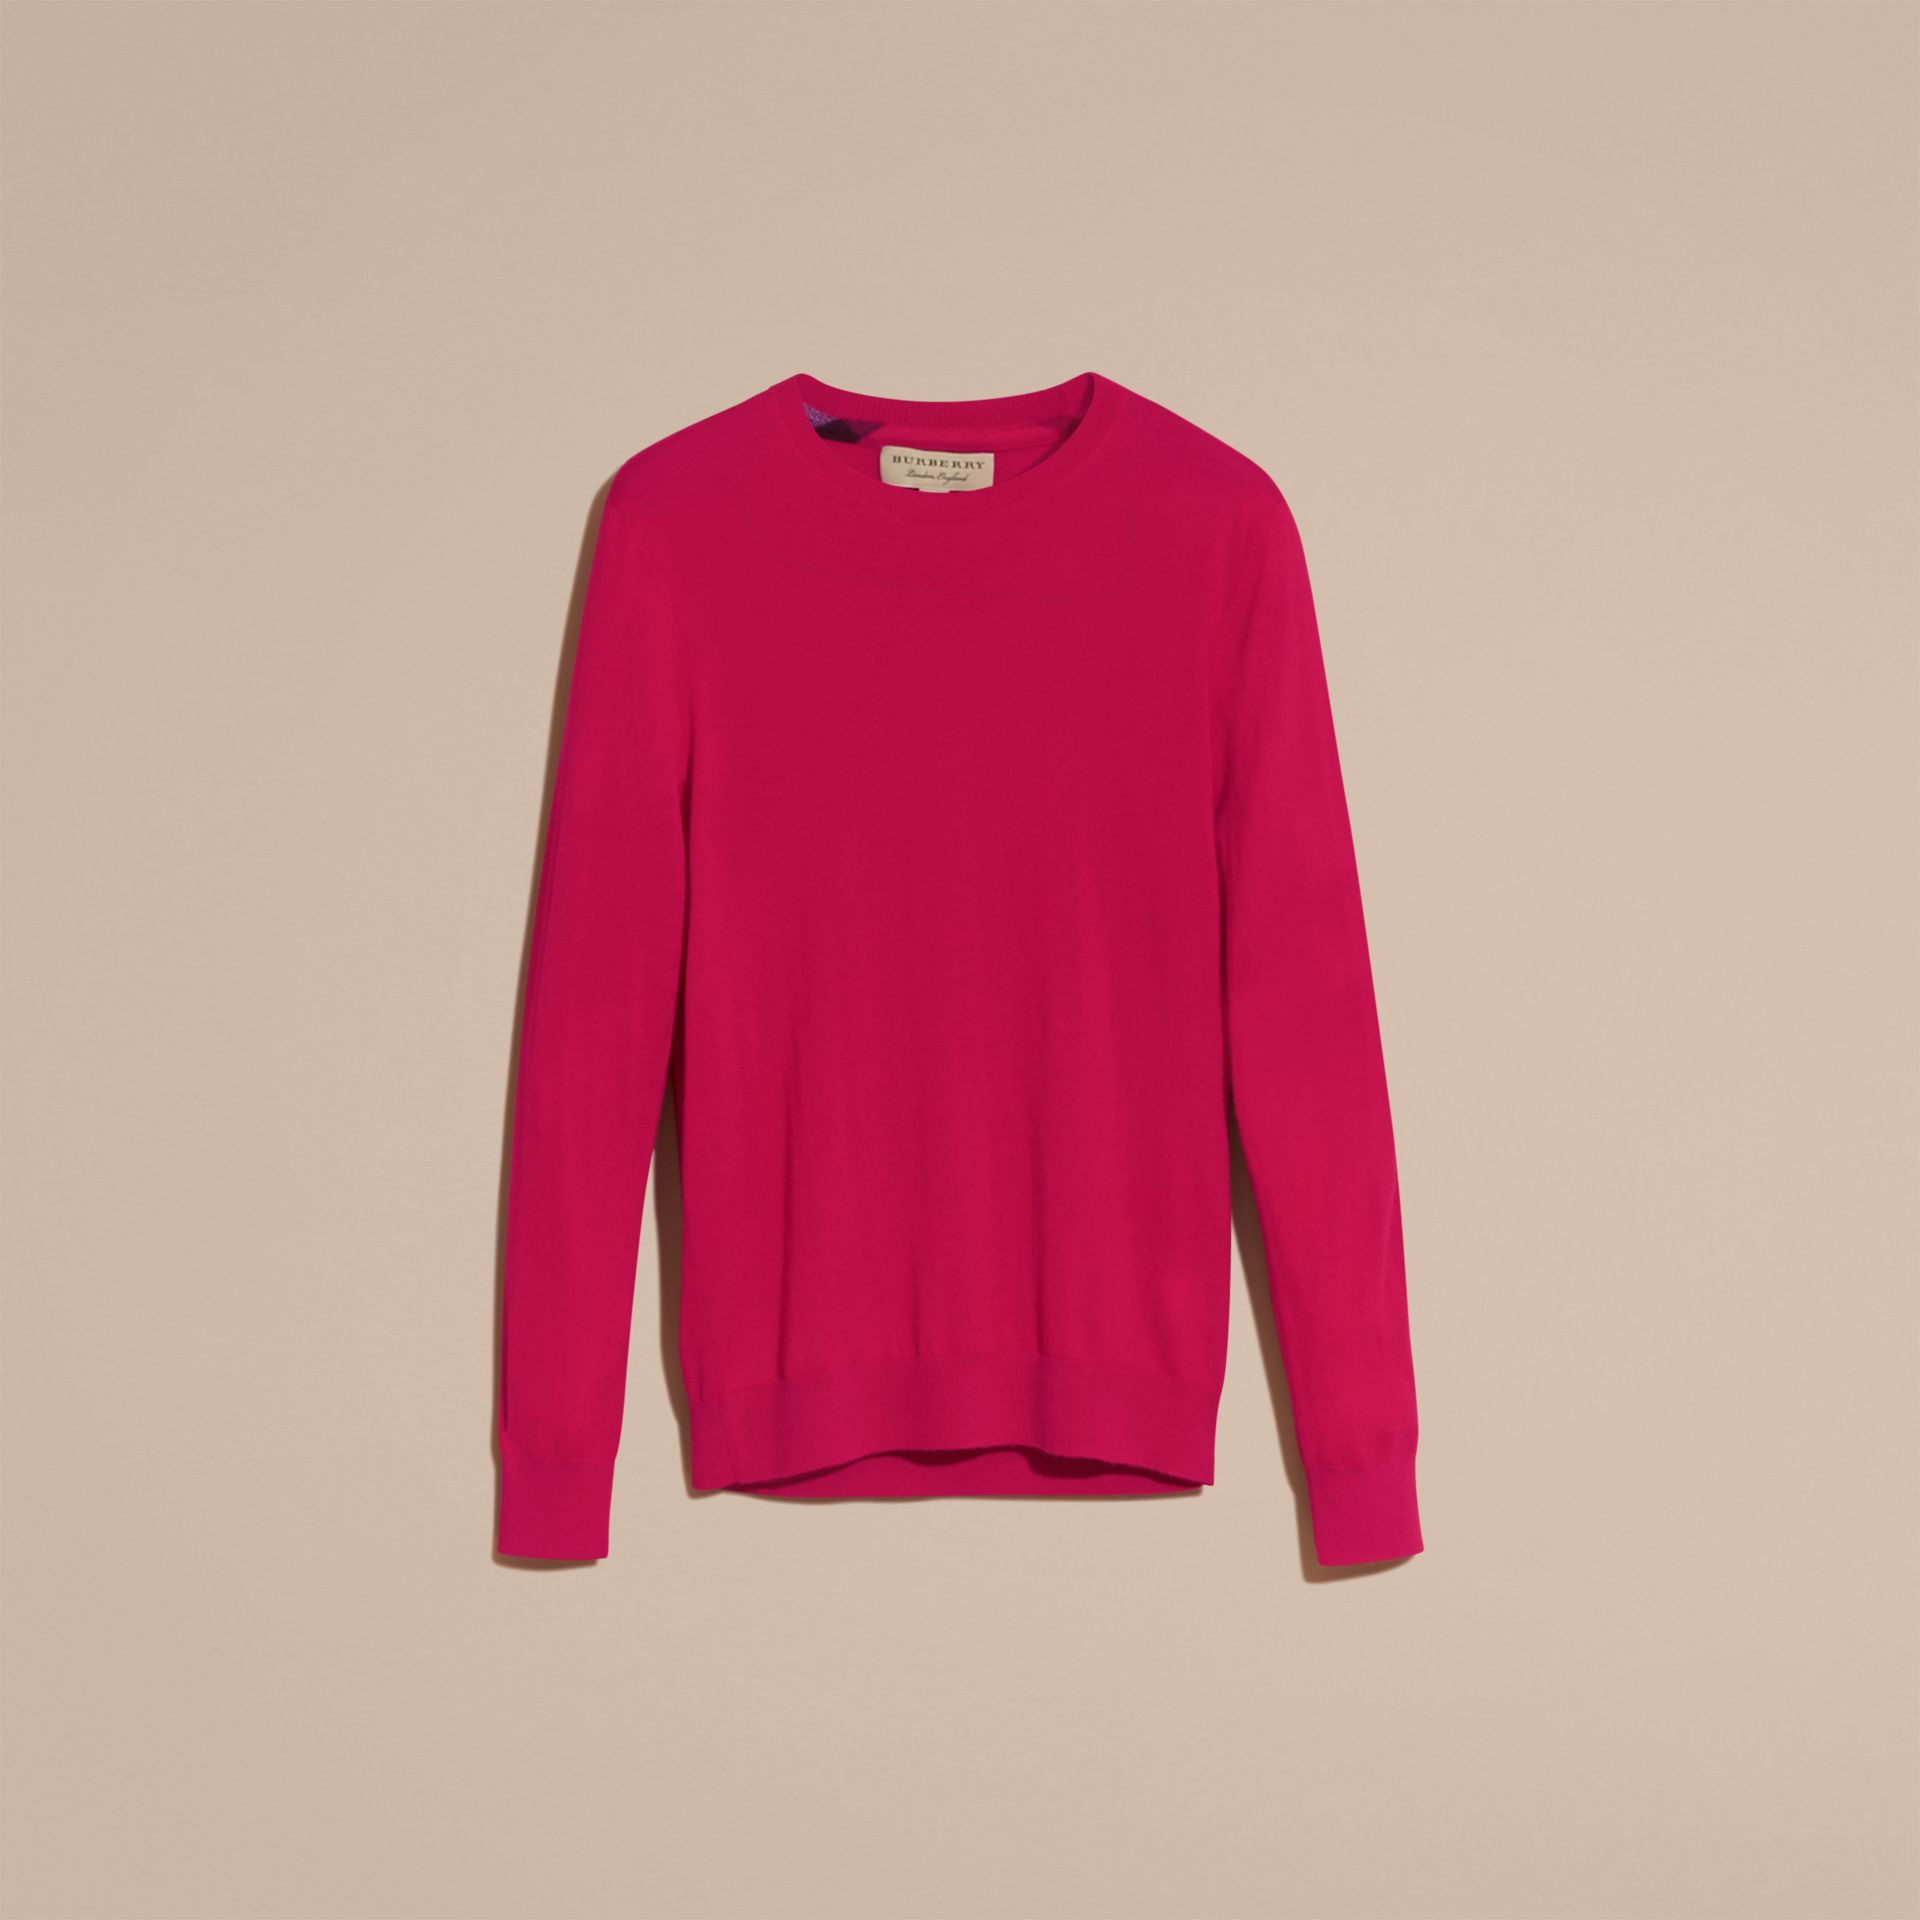 Lightweight Crew Neck Cashmere Sweater with Check Trim Bright Pink - gallery image 4